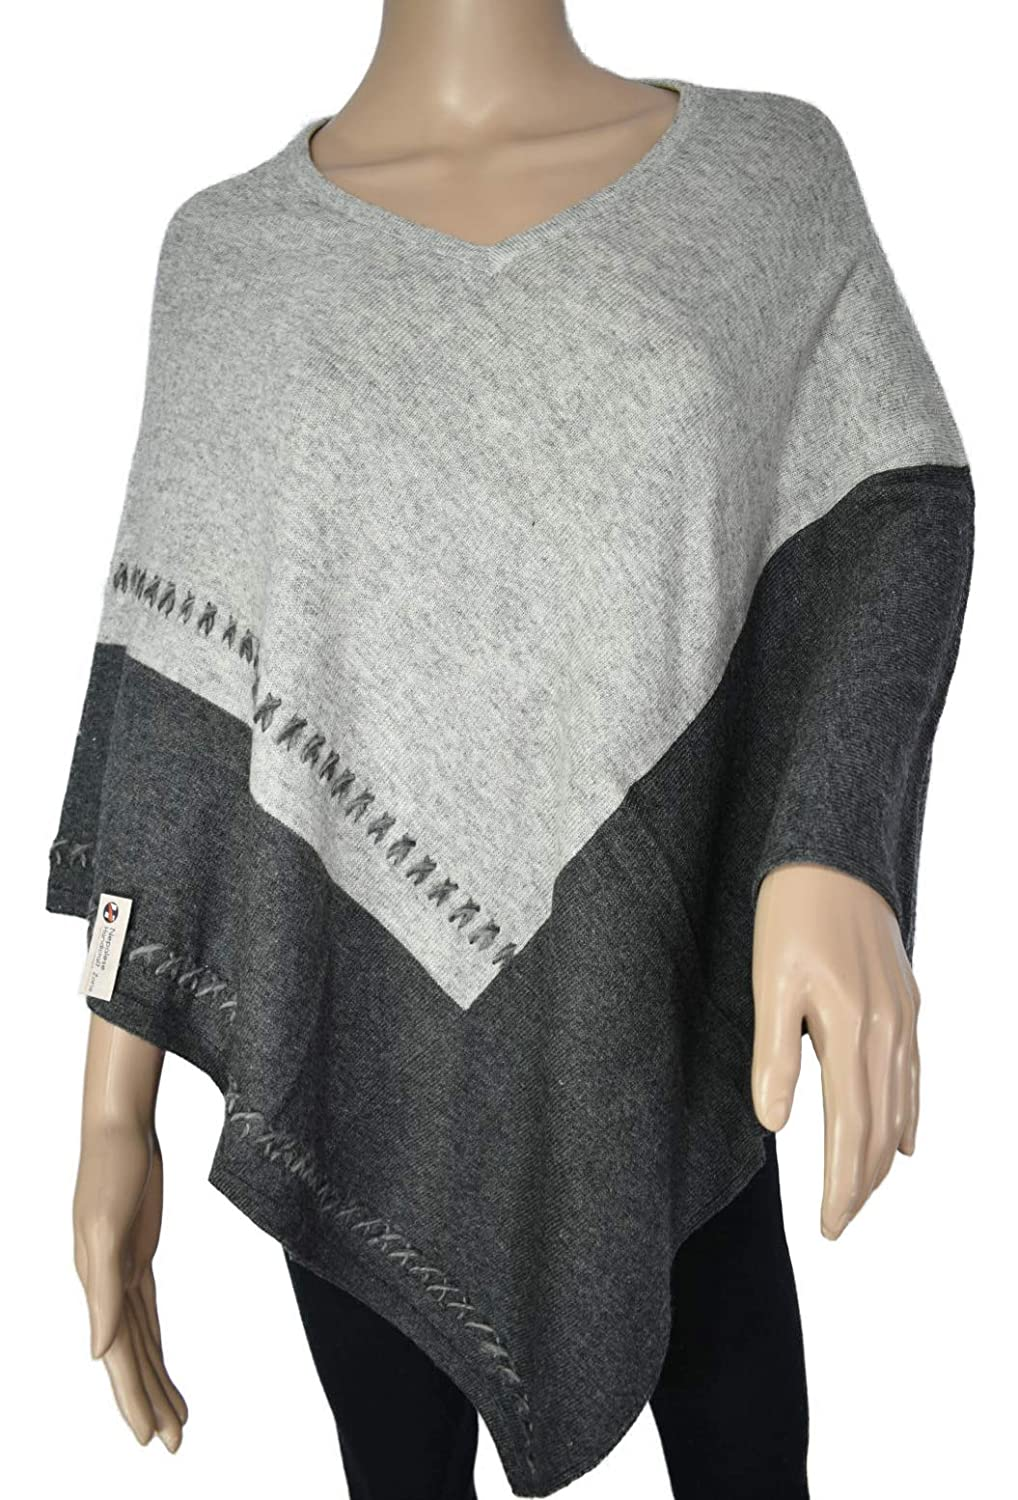 Grey and Black Exclusive Cashmere Poncho  Natural color Pure Himalayan Cashmere  Handmade in Nepal